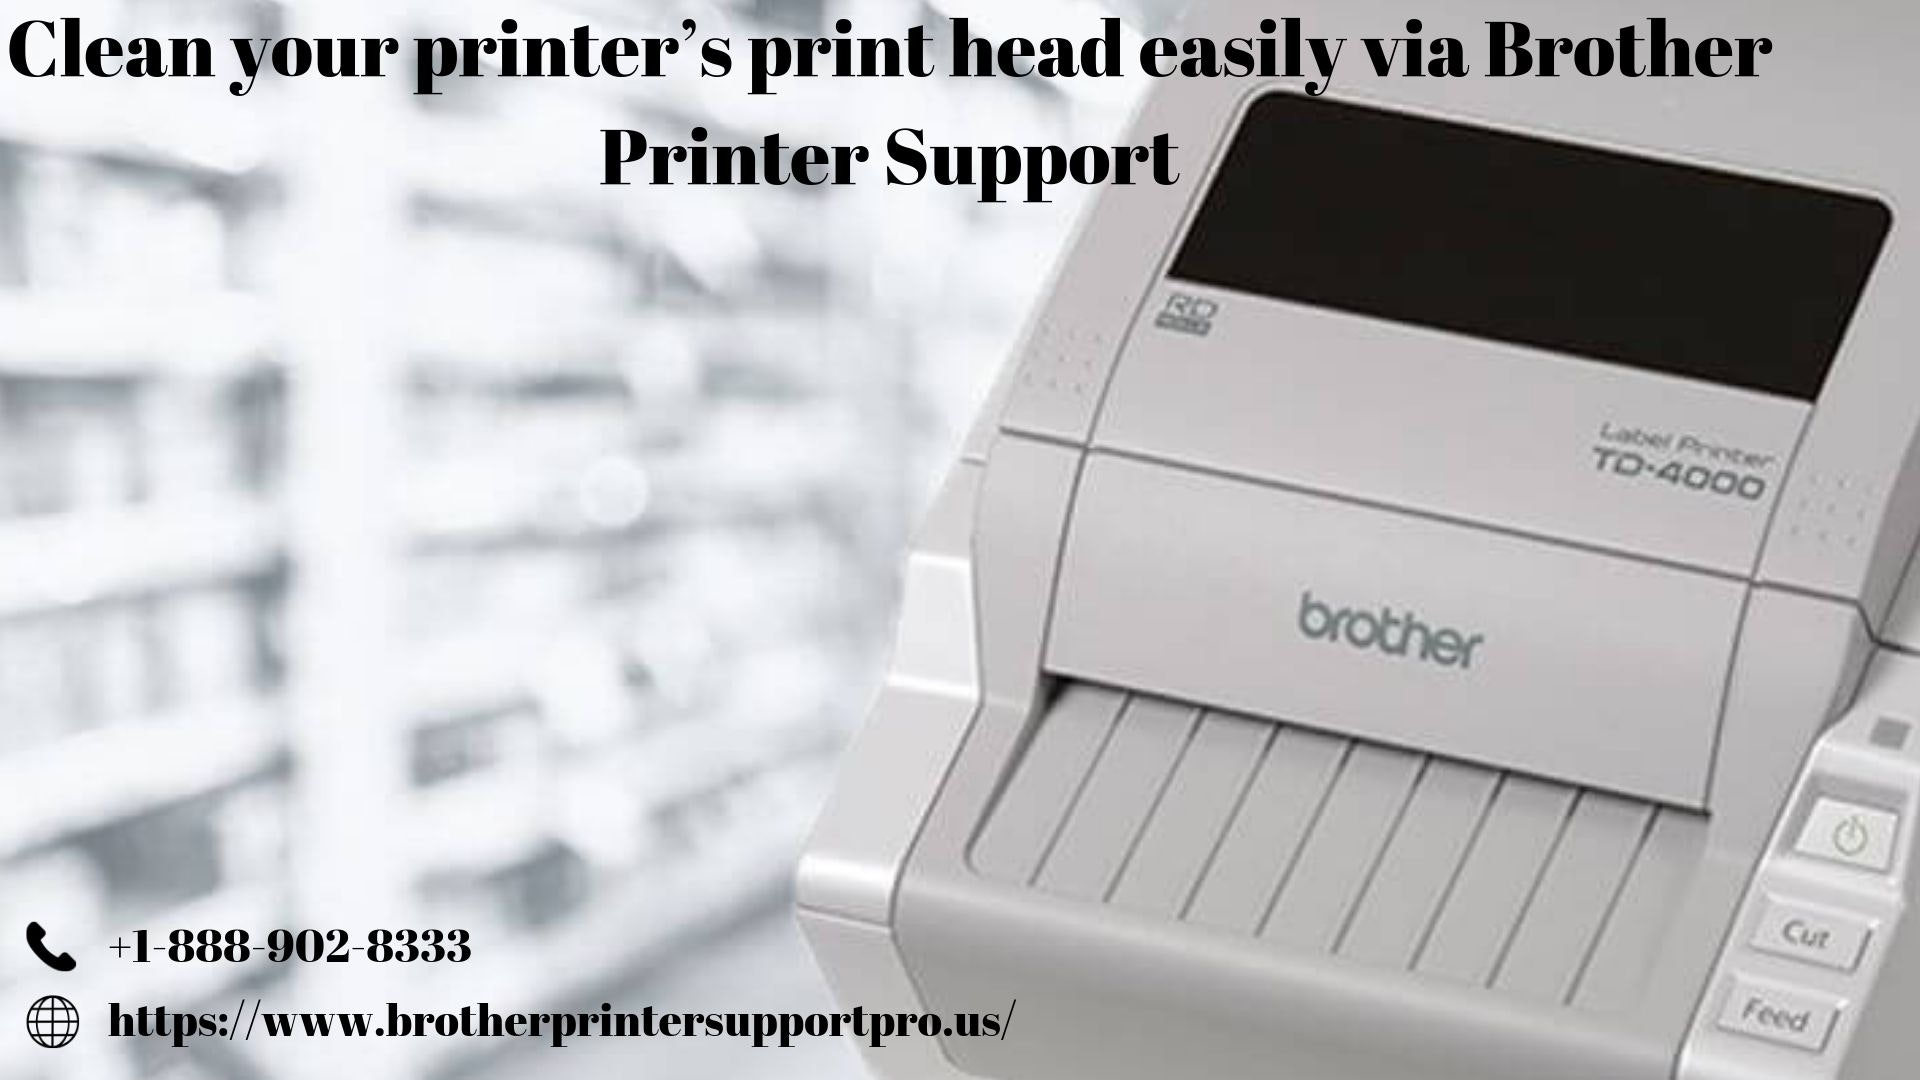 Clean your printer's print head easily via Brother Printer Support